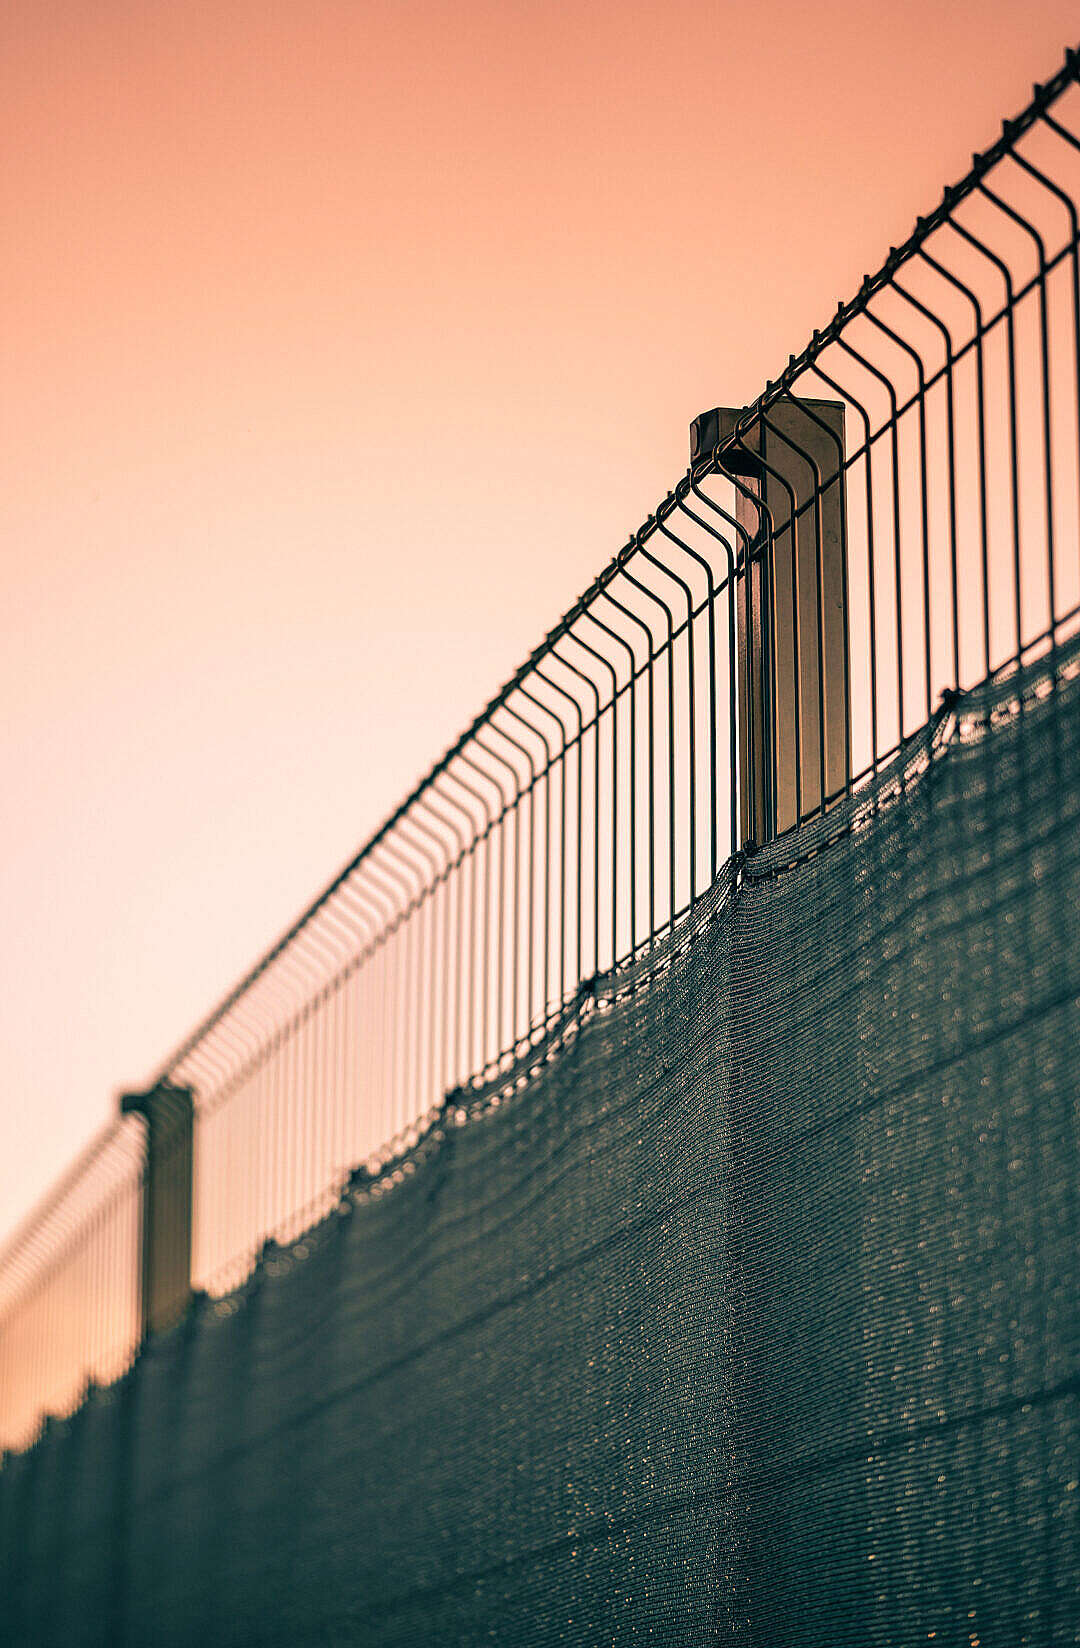 Download Modern Steel Fence FREE Stock Photo